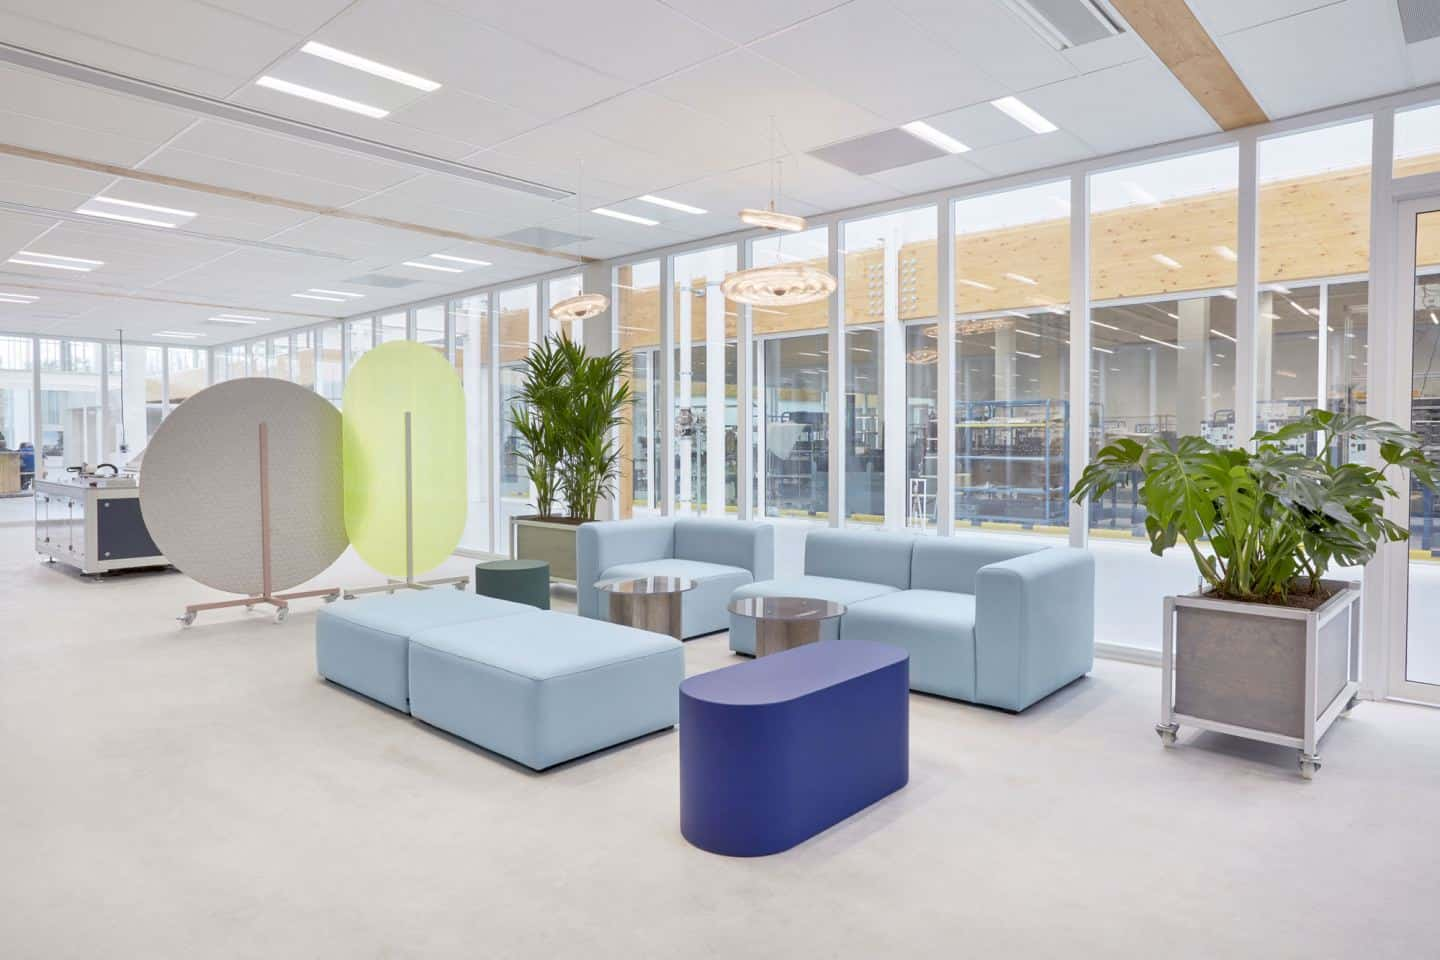 Protective Office Screens for the post-pandemic workplace by Dutch Invertuals used in a lobby seating area